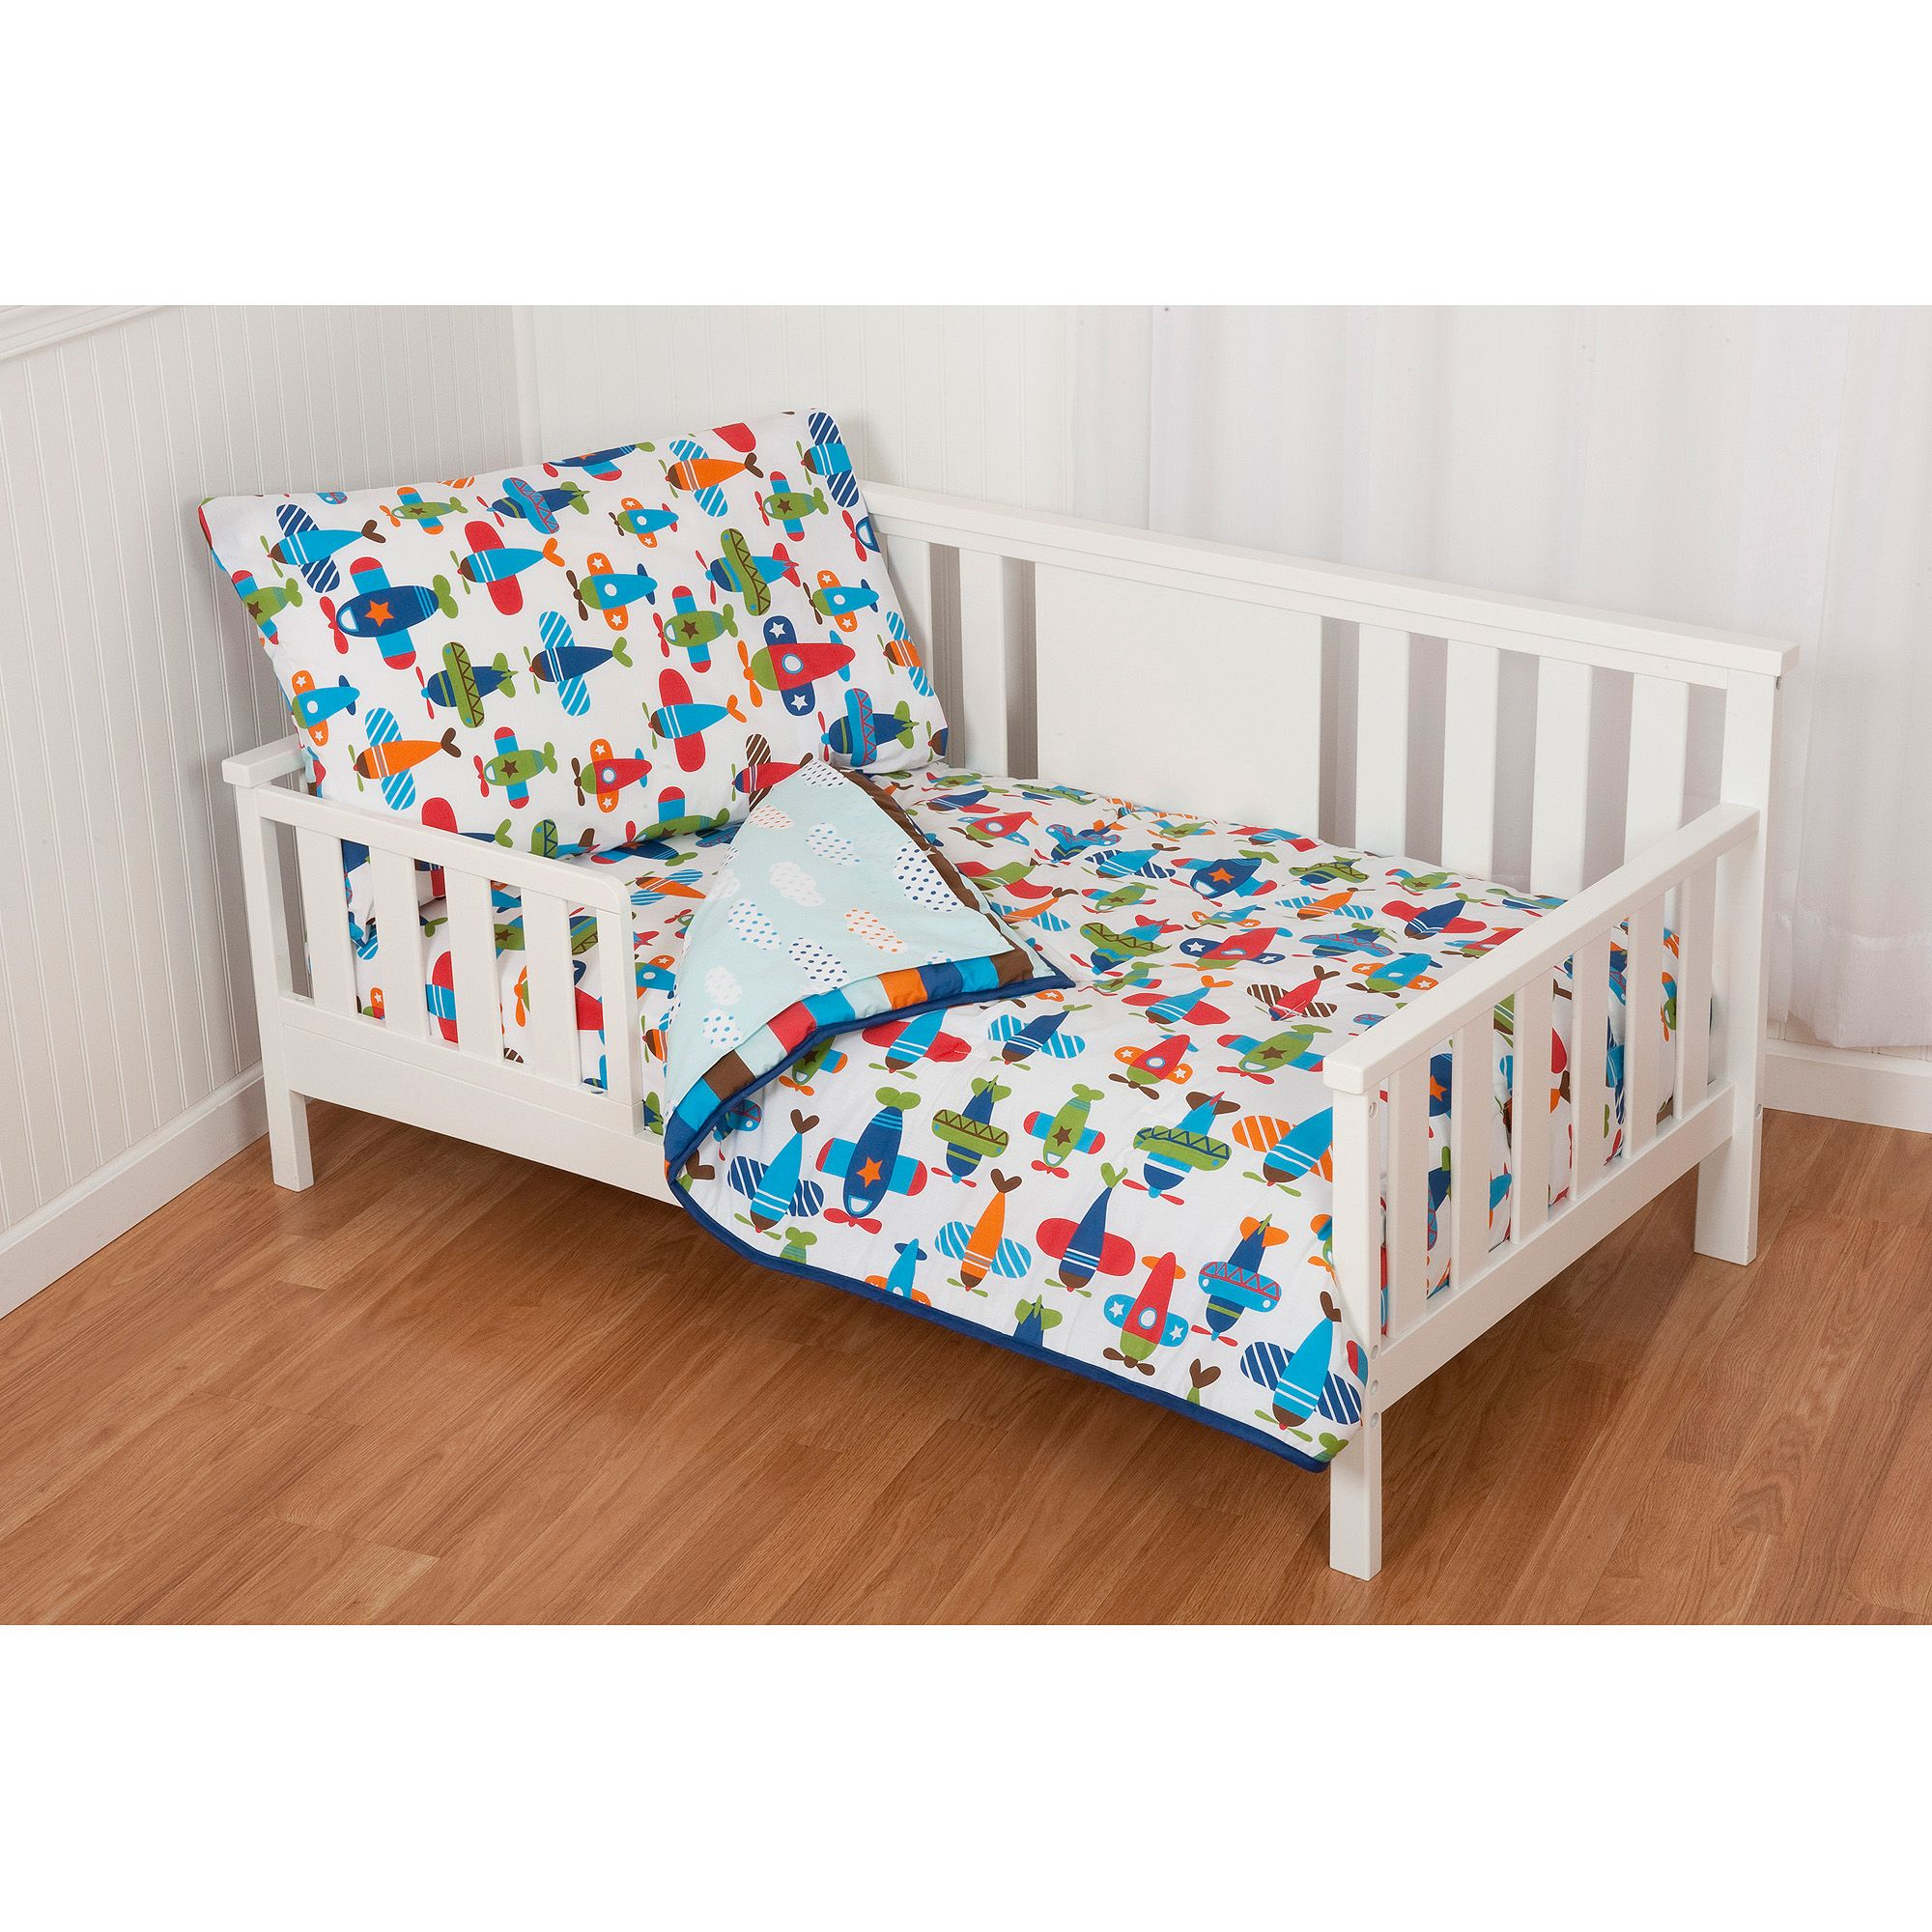 Bettwäsche Jugend Toddler Bed Bedding Dekor Bed Toddler Bed Und Boy Toddler Bedroom